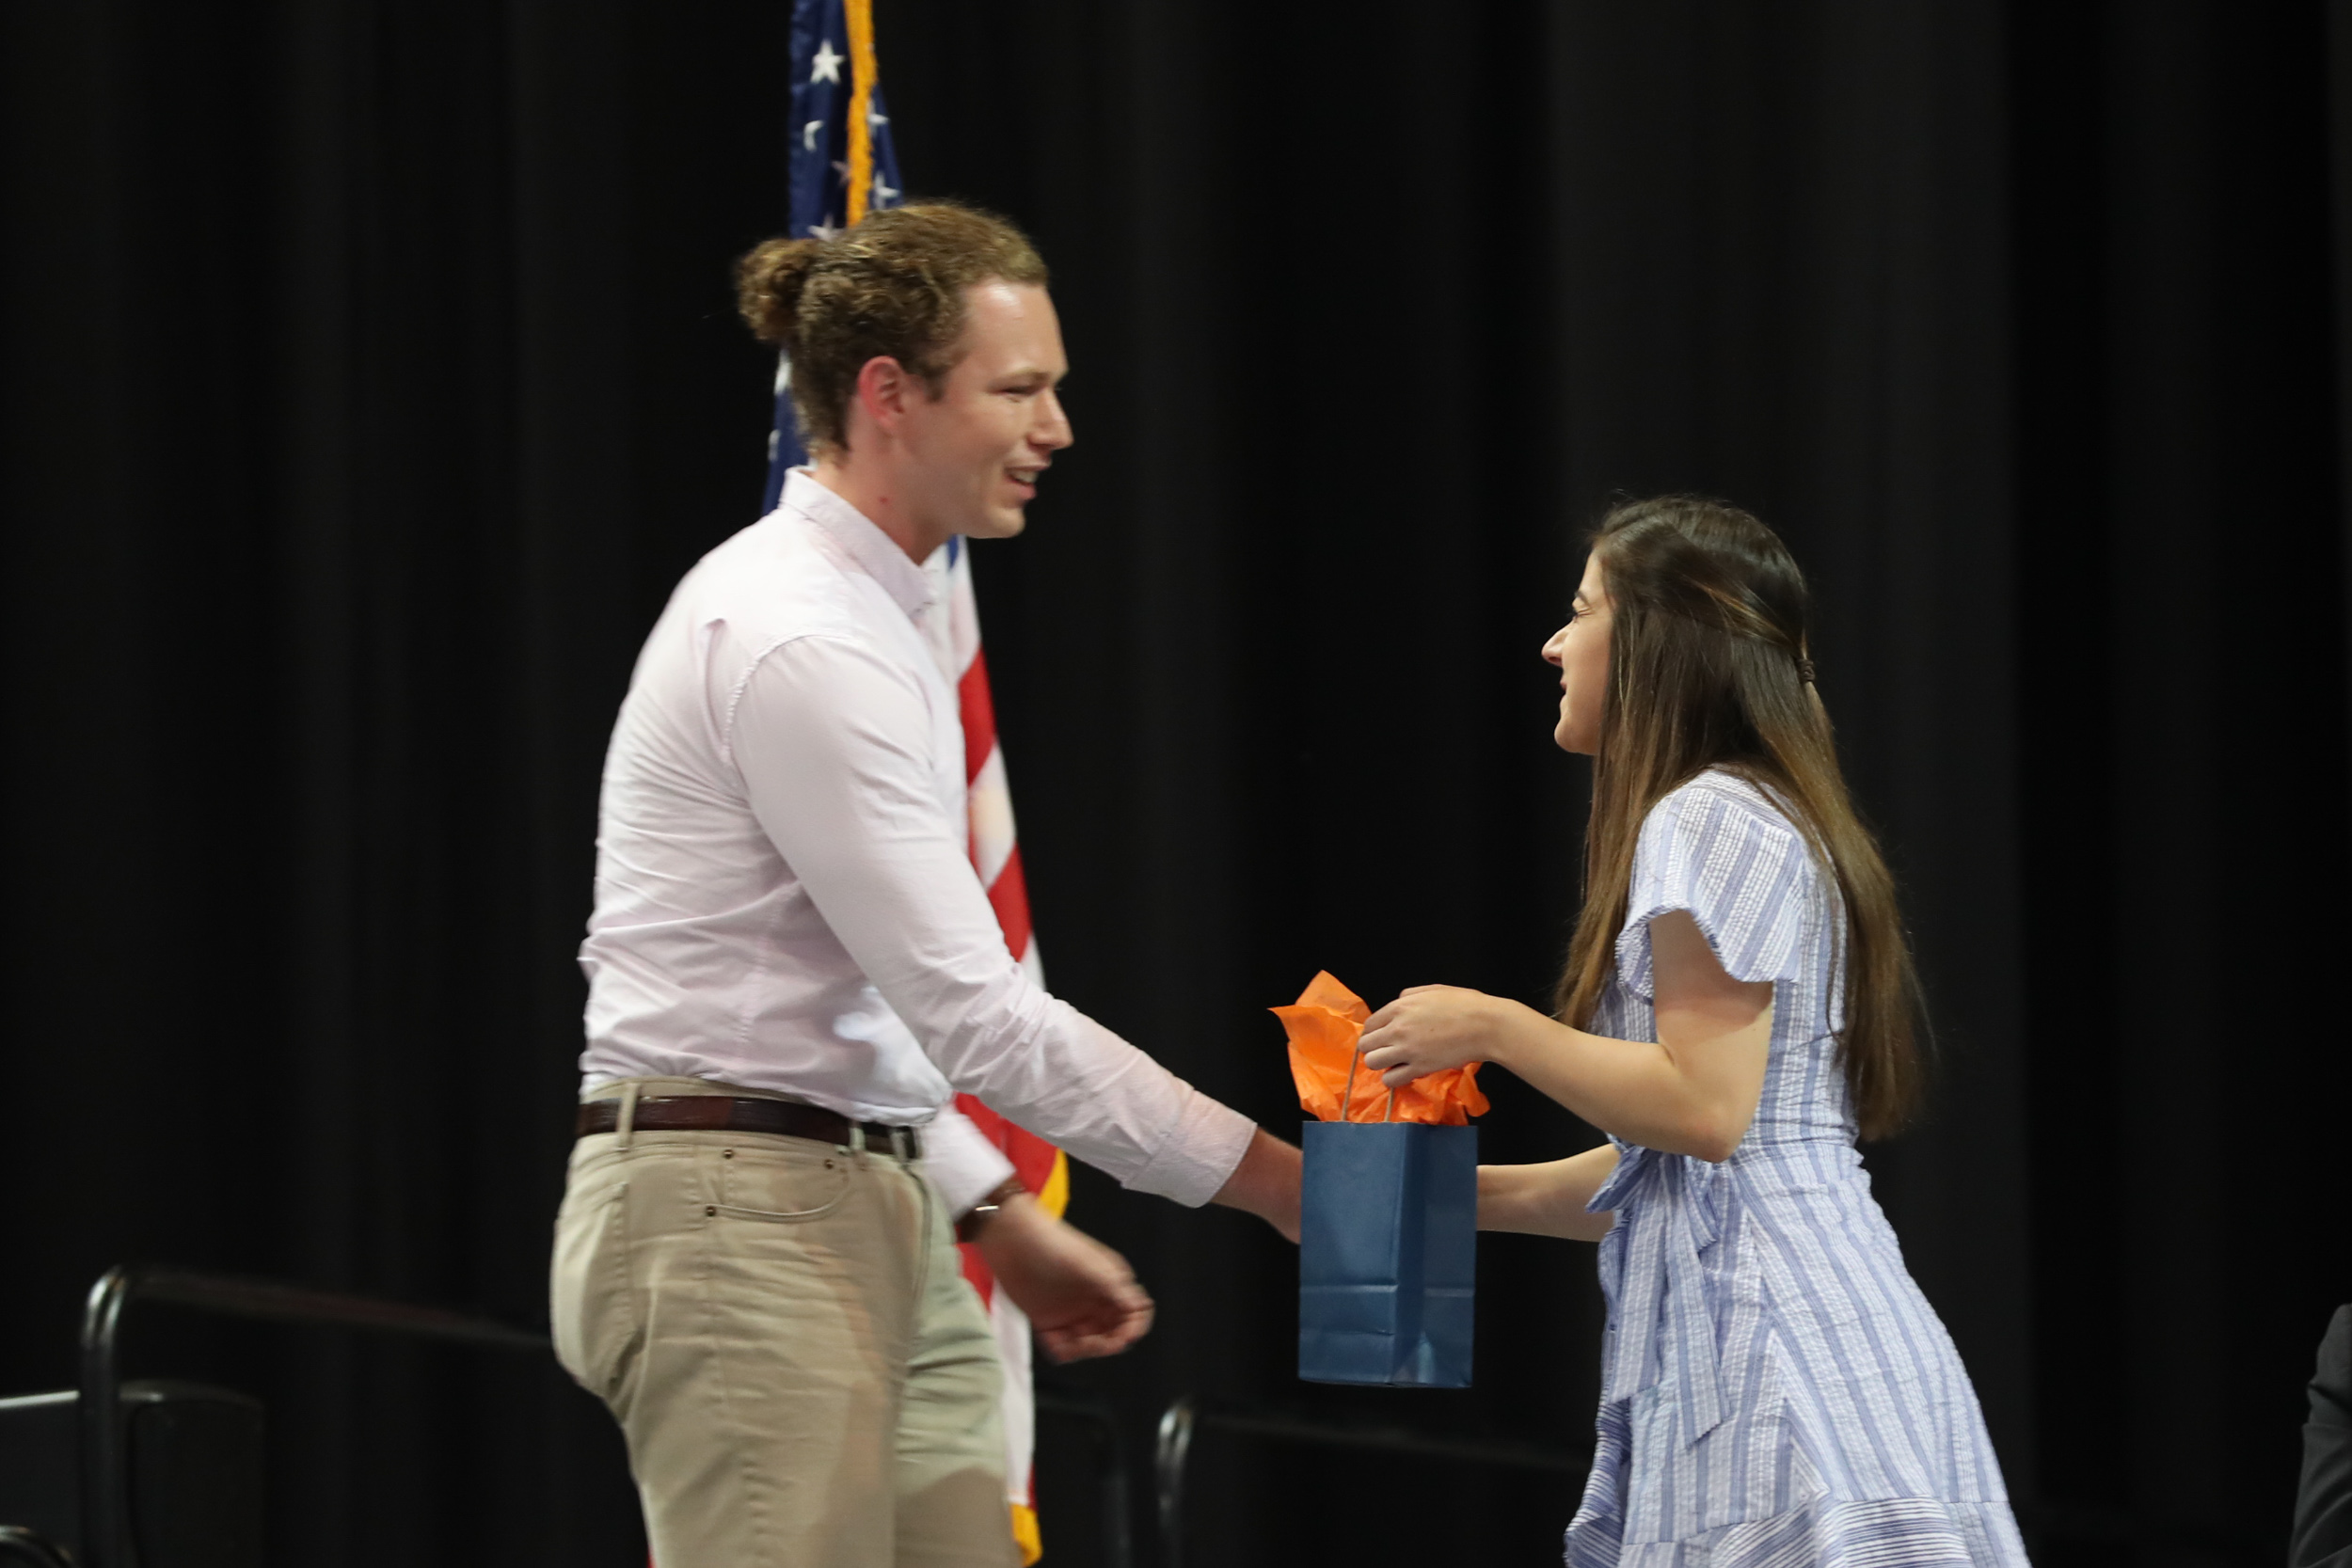 The Bicentennial Leadership Award went to Austin Widner, a double major in environmental thought and practice and environmental sciences.